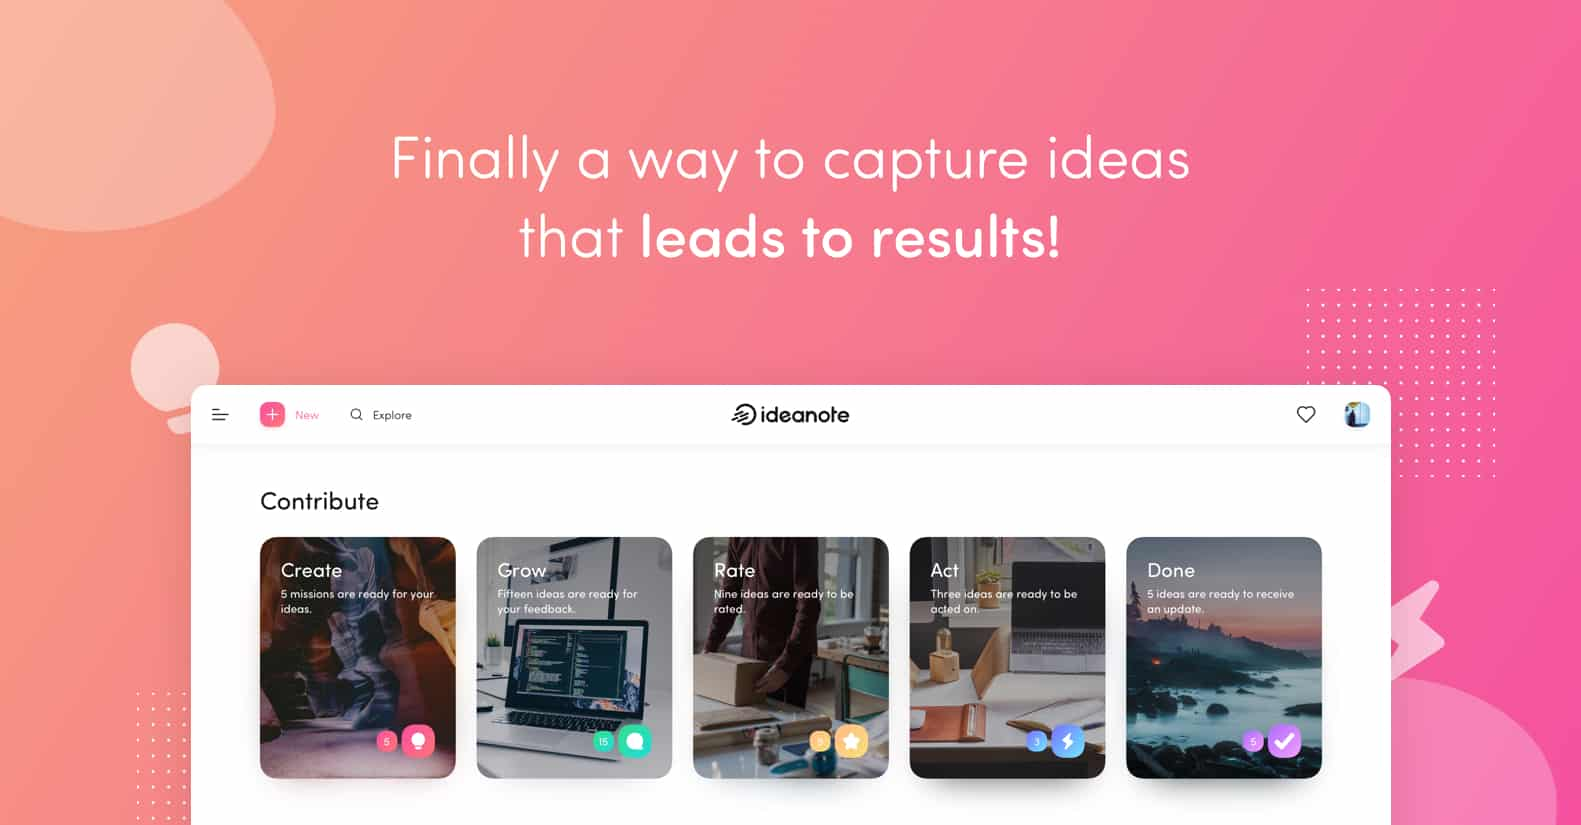 Ideanote – Finally a way to capture ideas that leads to results!